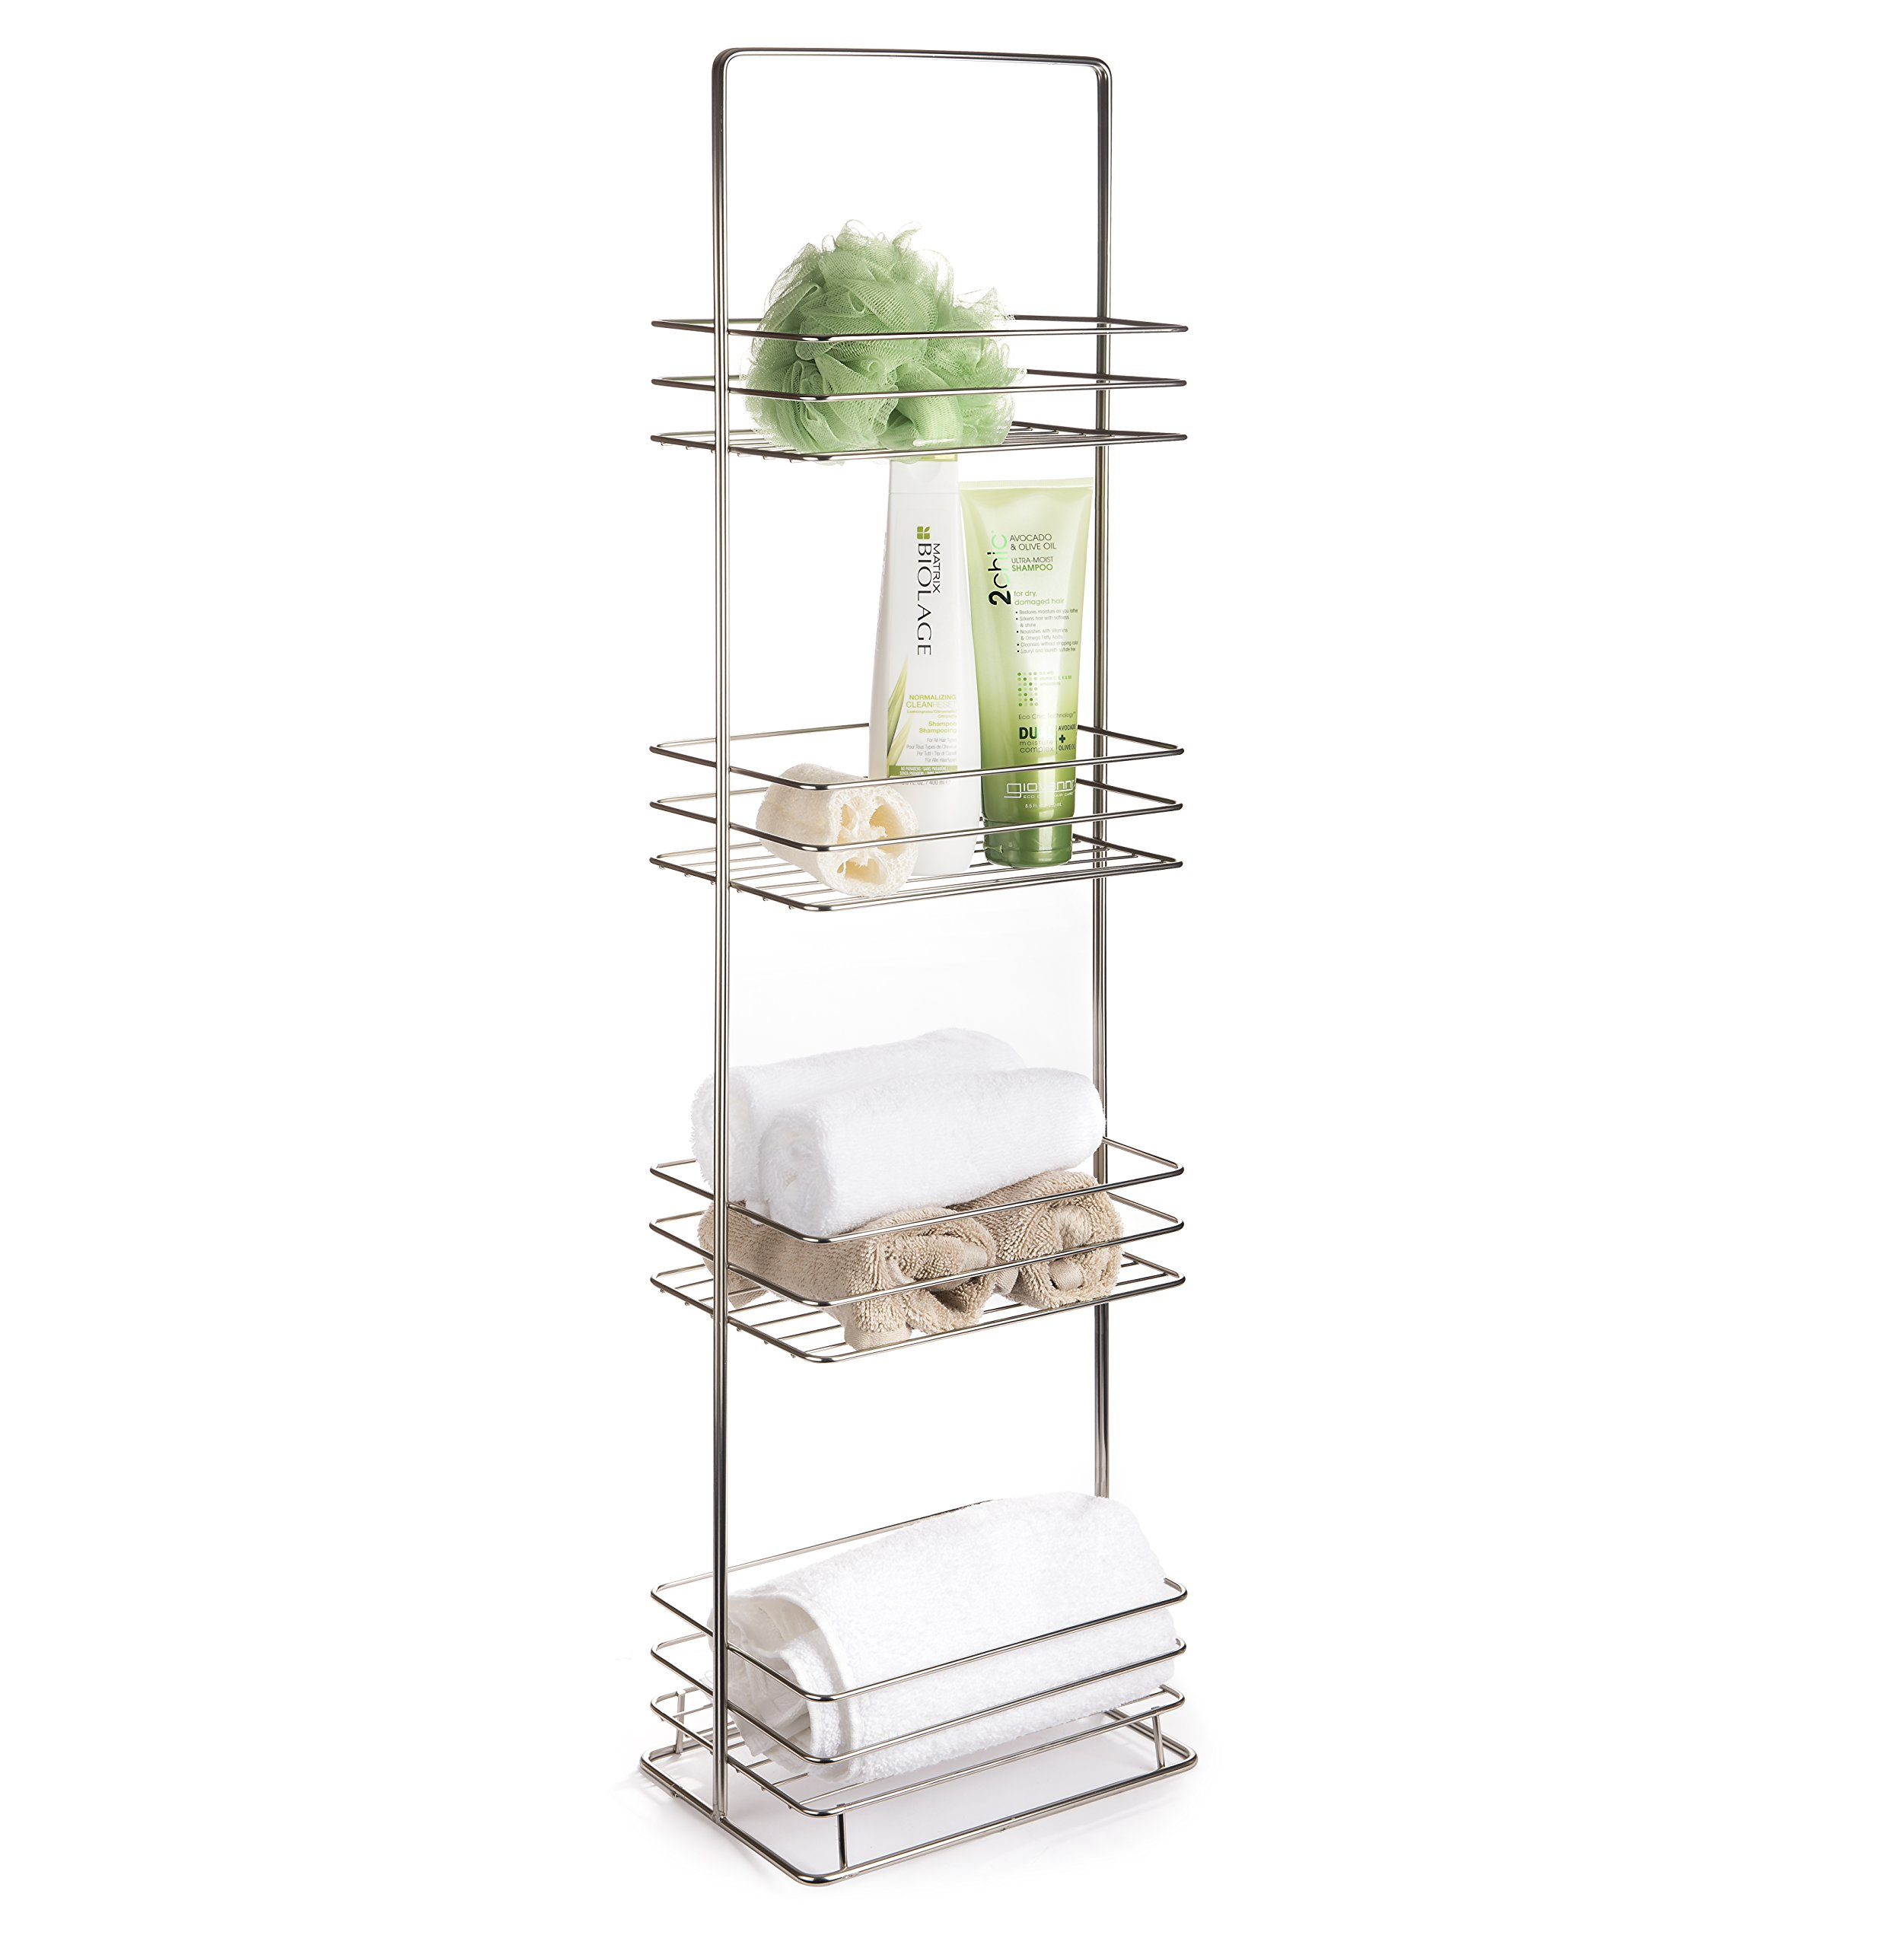 AMG and Enchante Accessories Free Standing Bathroom Spa Tower Storage Caddy, FC100002 SNI, Satin Nickel